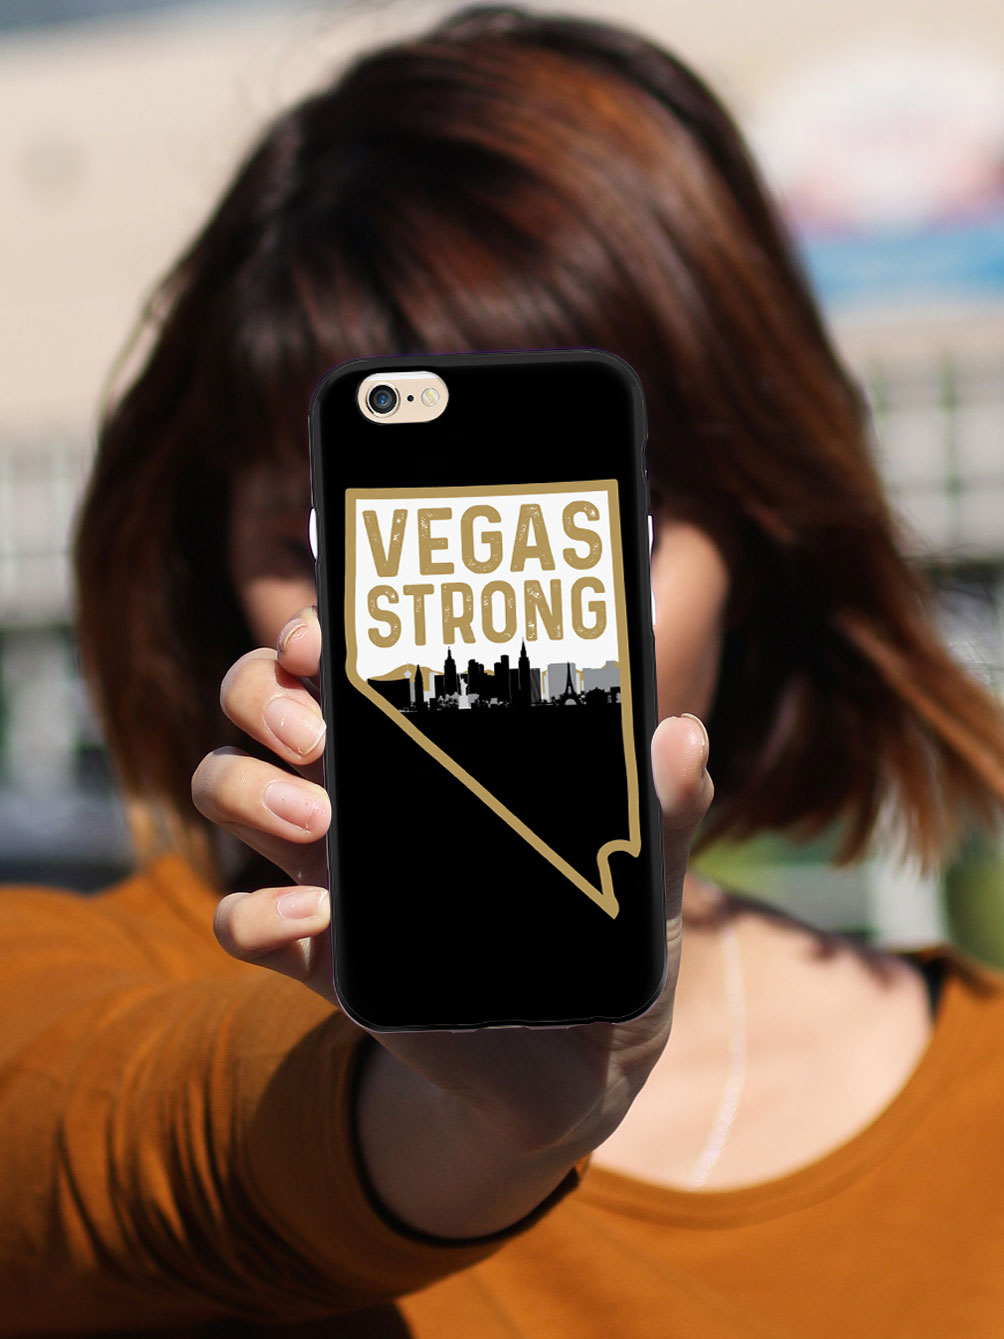 Vegas Strong - Nevada and City Silhouette - Black Case